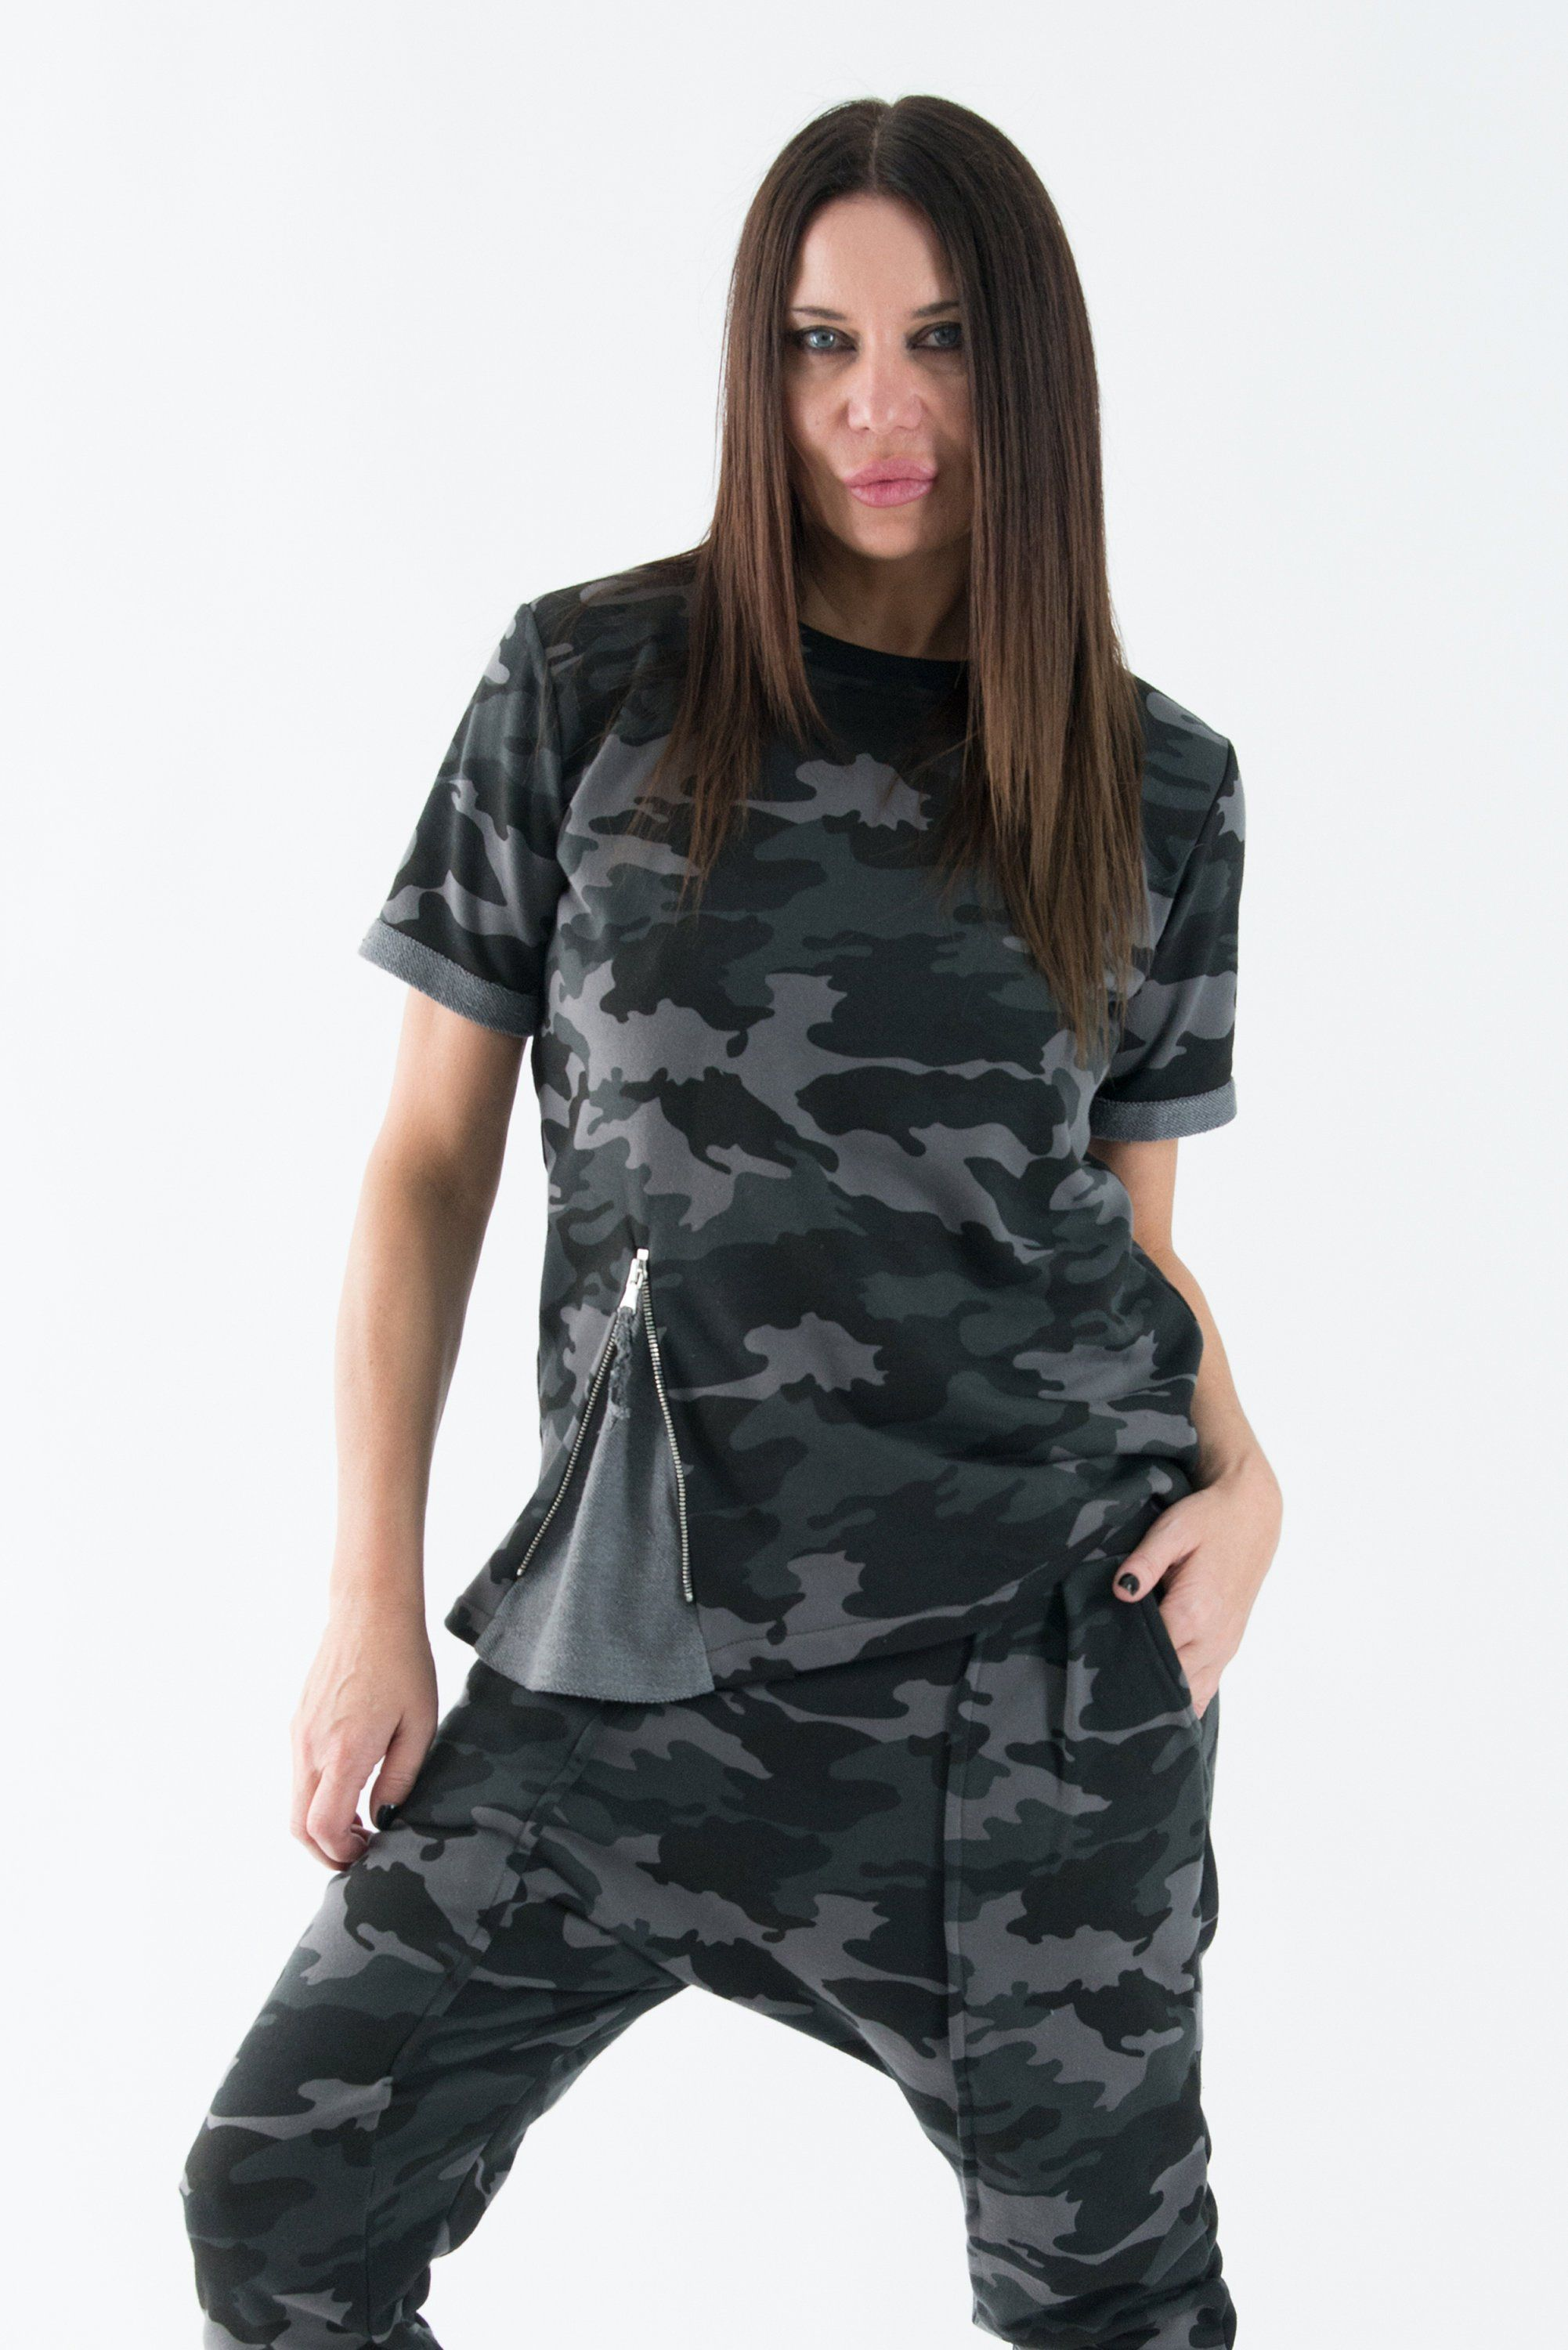 Camouflage Cotton Shirt with Short sleeves, Grey Como Blouse, Fashion  Military Dress by Eug